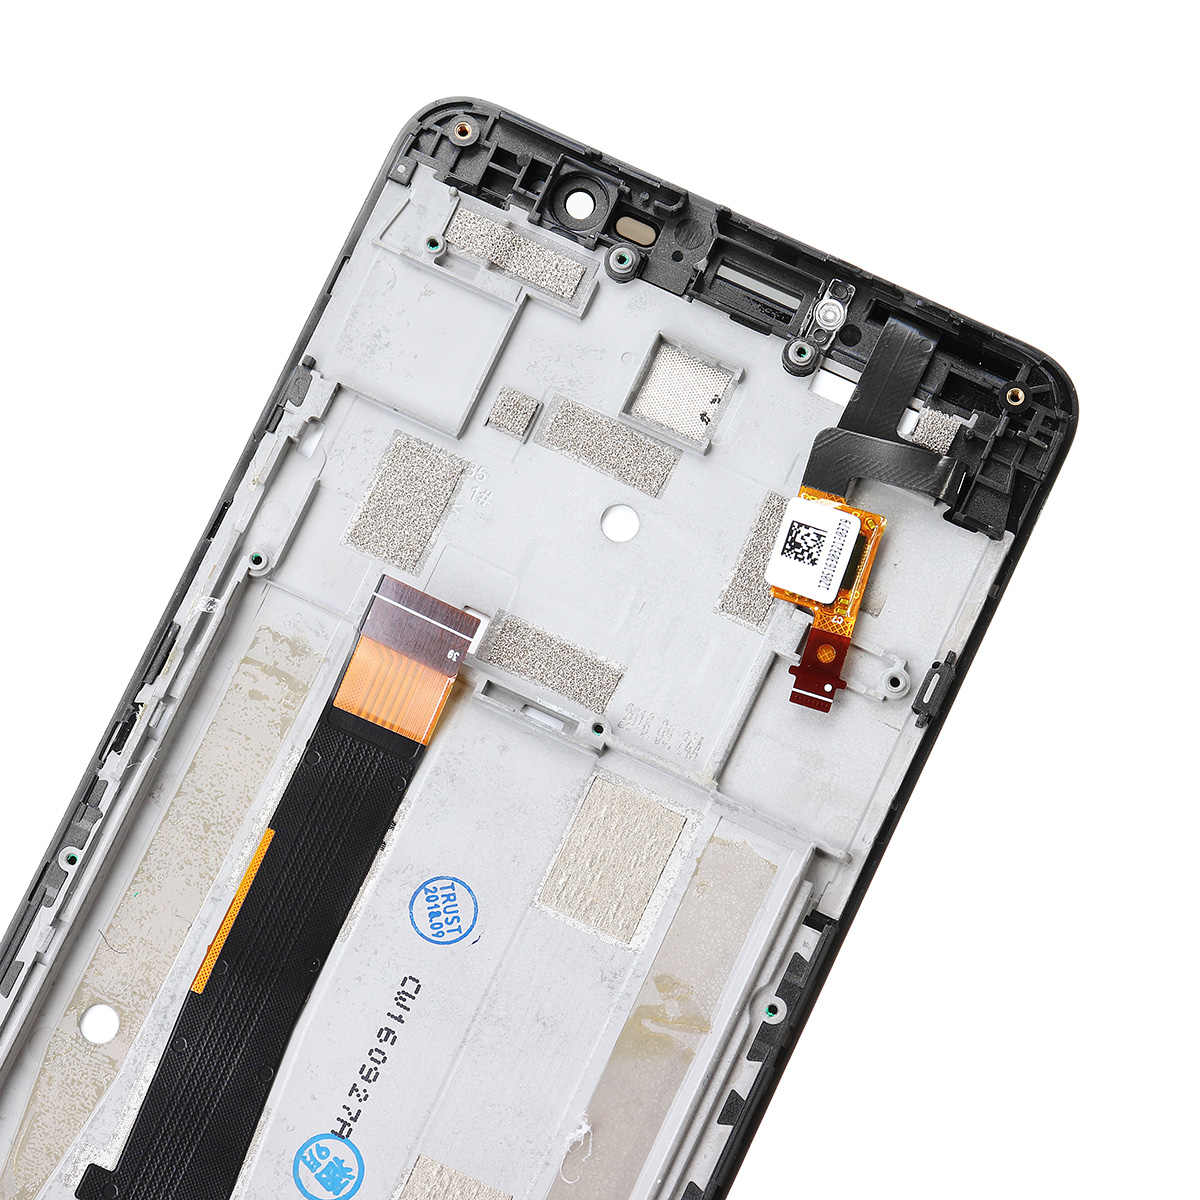 LEORY Für Alcatel One Touchs A3 XL 9008X 9008D 9008A Mobiltelefon Touchs Bildschirm + LCD Display Assembly + Tools Ersatz